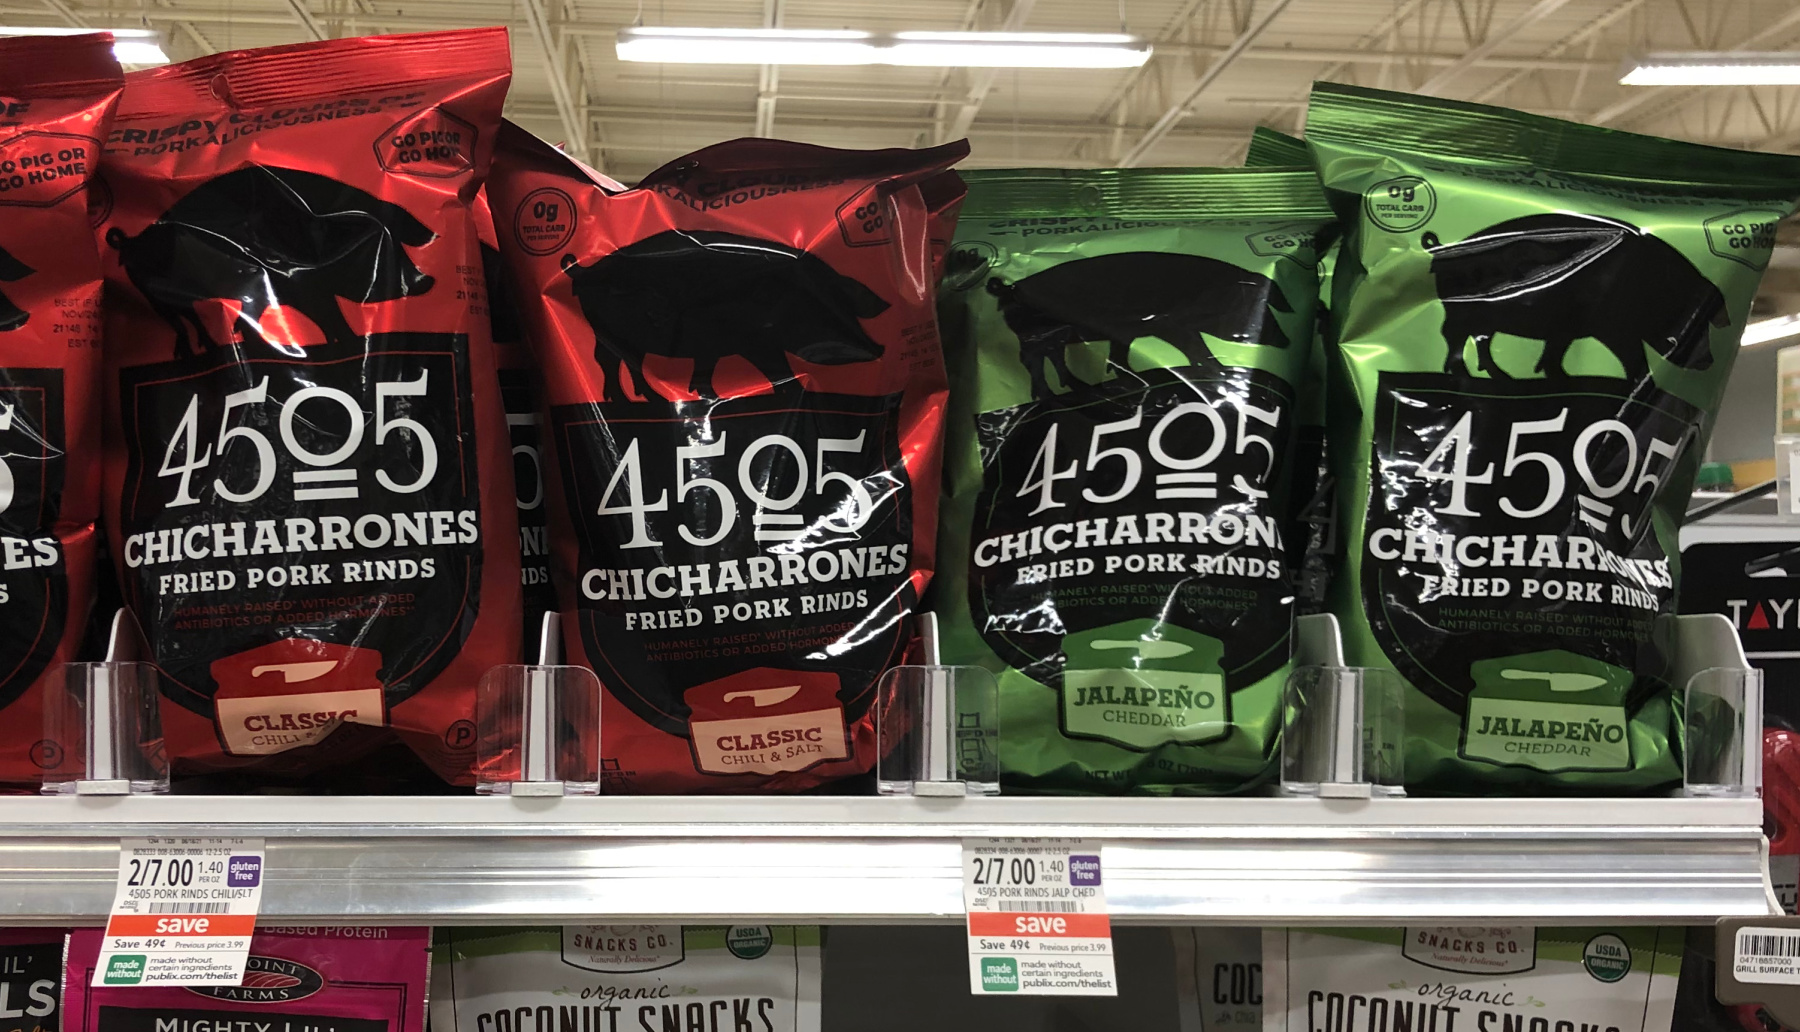 4505 Chicharrones Are Now Available At Publix - Three Winners Get A $50 Publix Gift Card & Lots Of FREE 4505 Chicharrones! on I Heart Publix 1